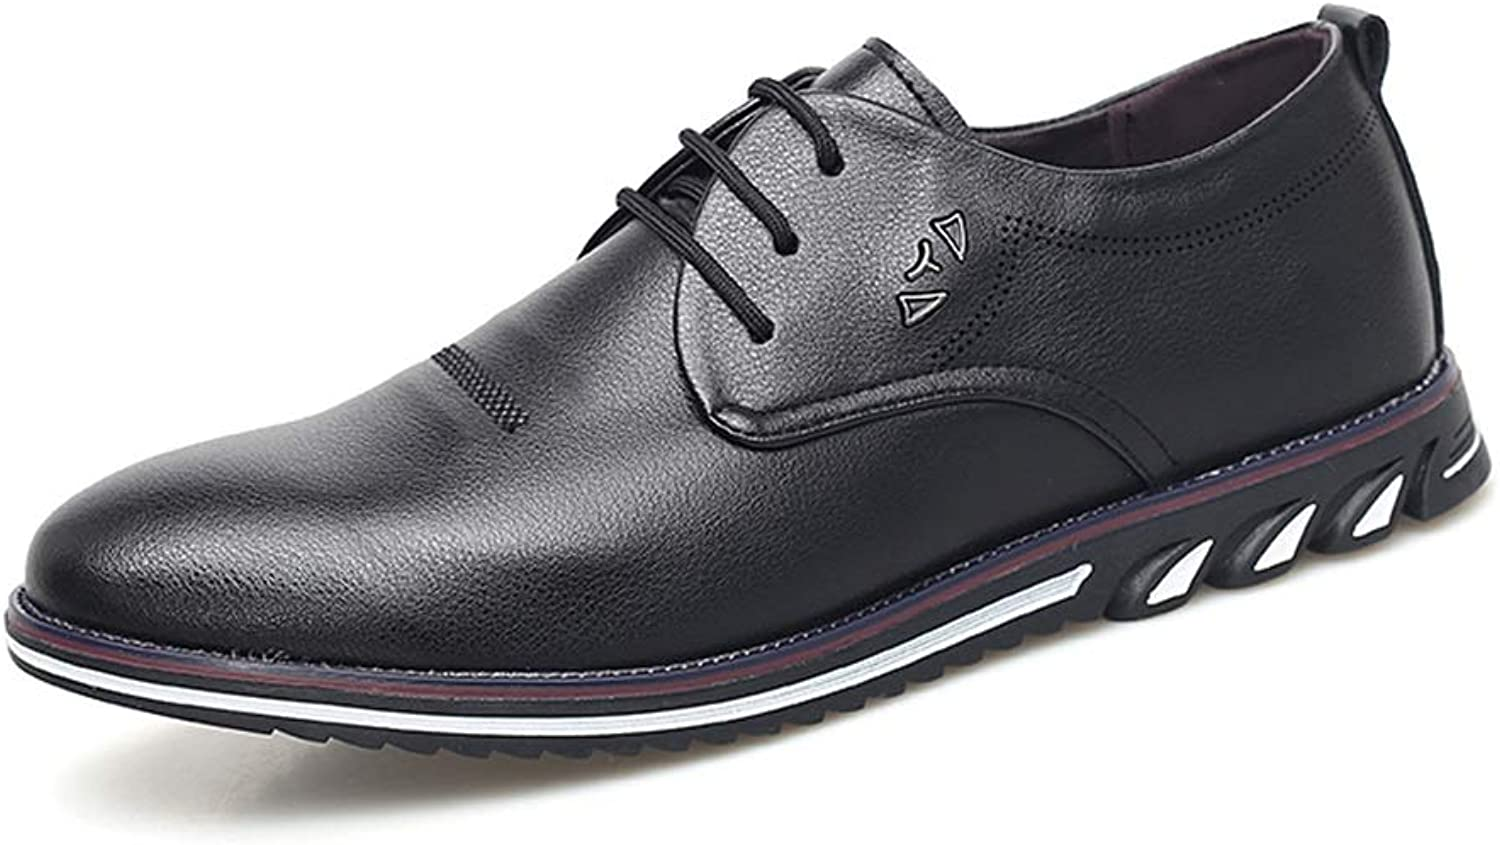 Men's Leather shoes Flat Oxford shoes Low to Help Waterproof Non-Slip Round Head Tie Business Casual shoes (color   Black, Size   6 UK)